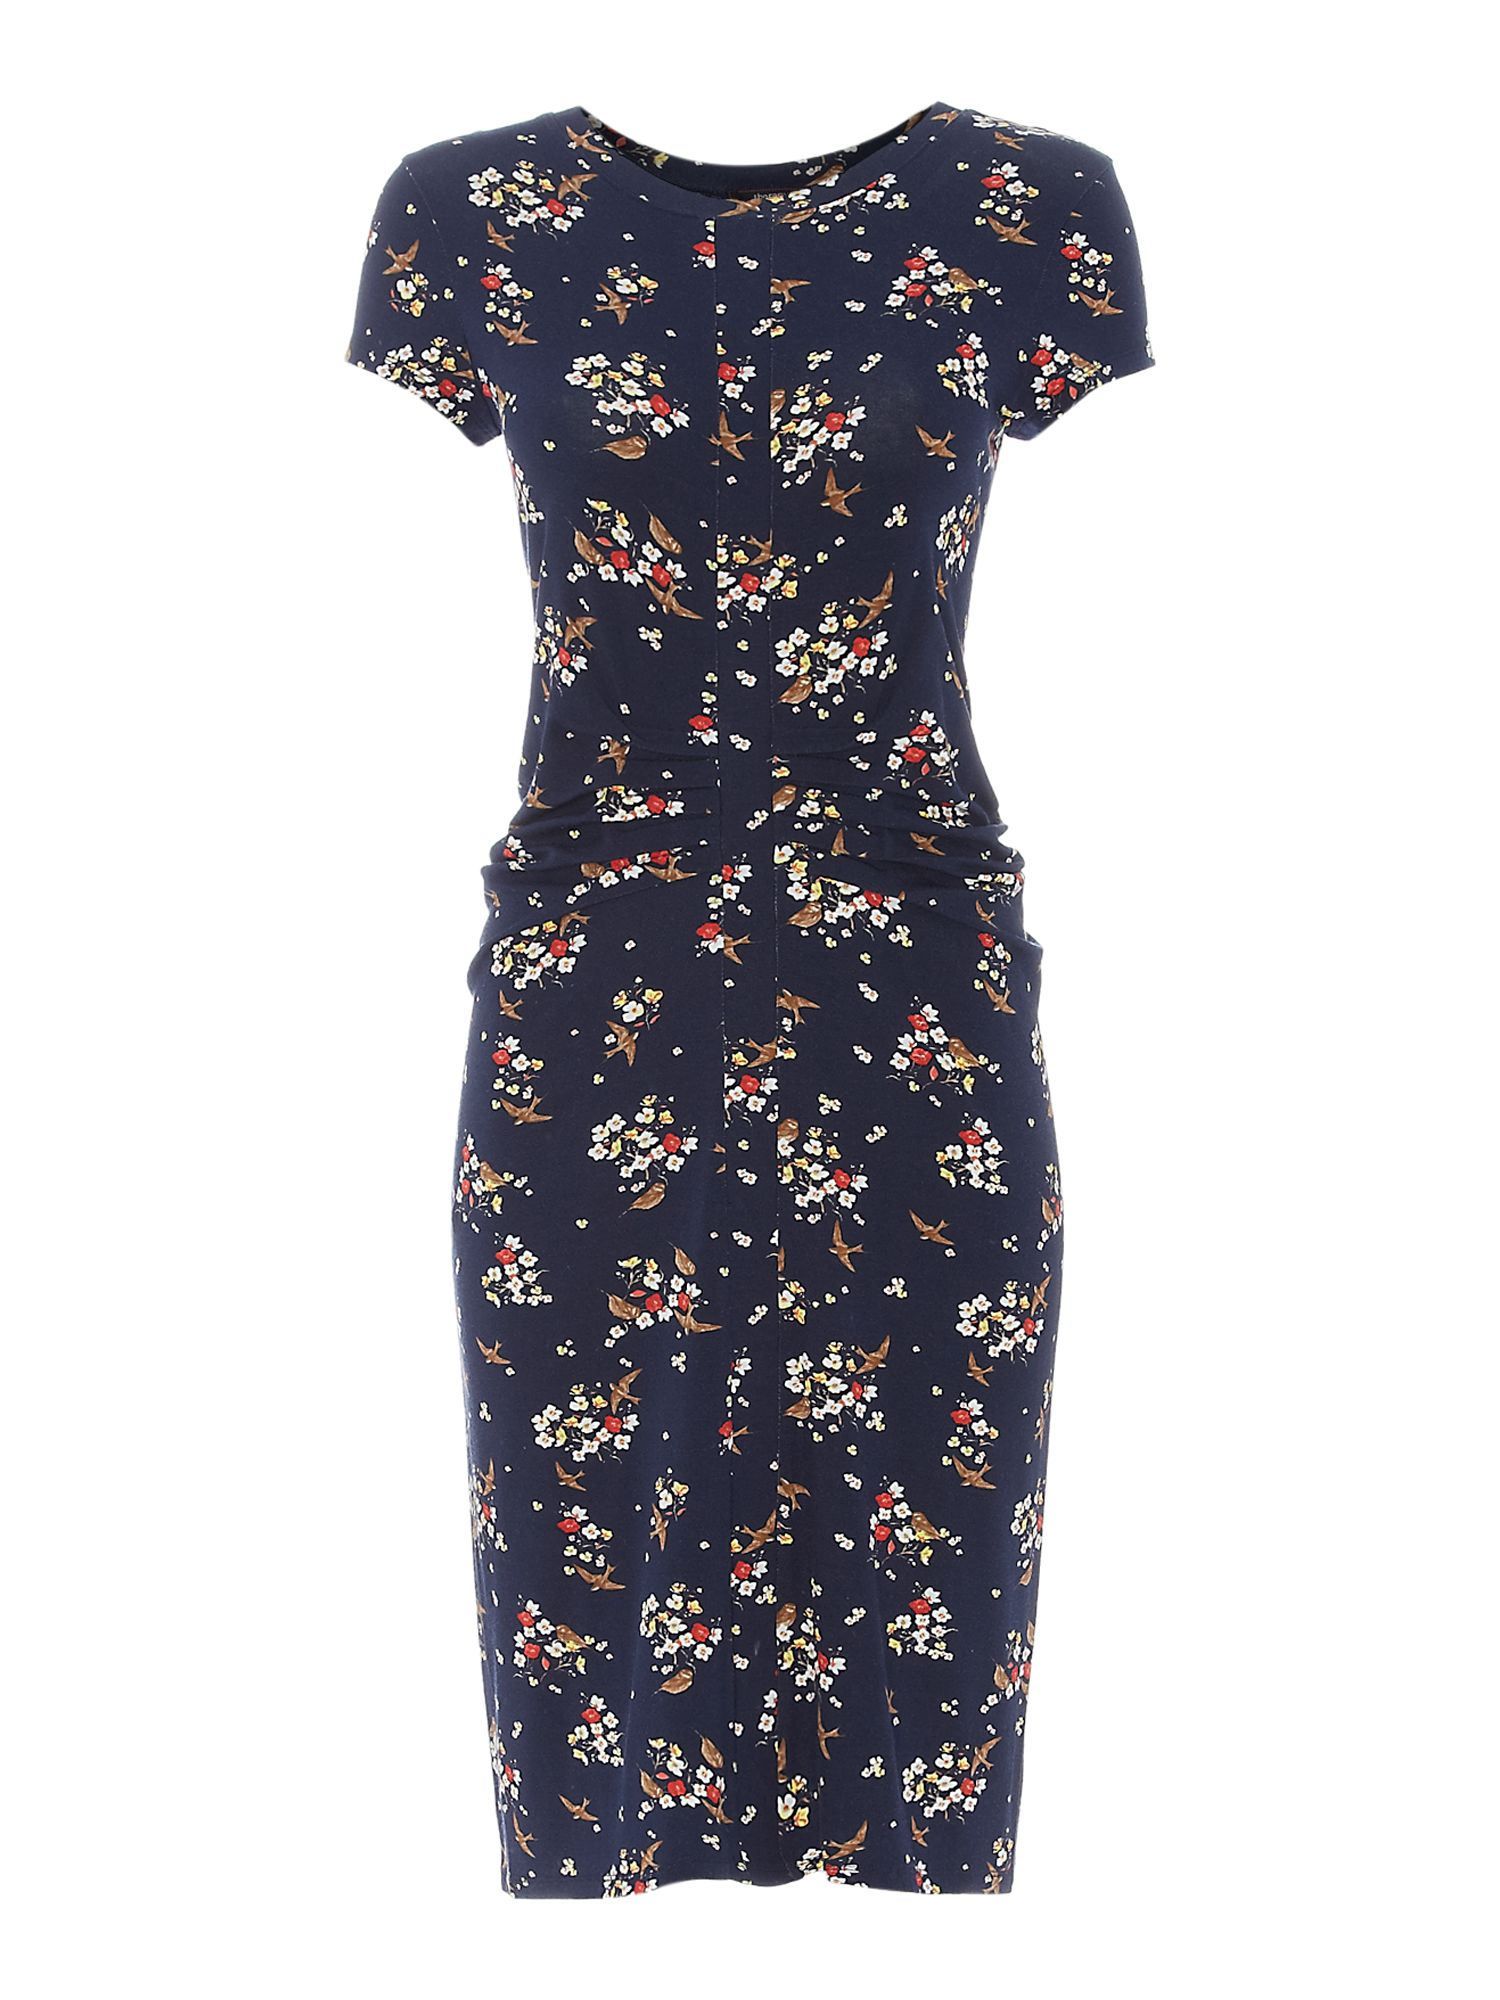 Ditsy bird print jersey dress